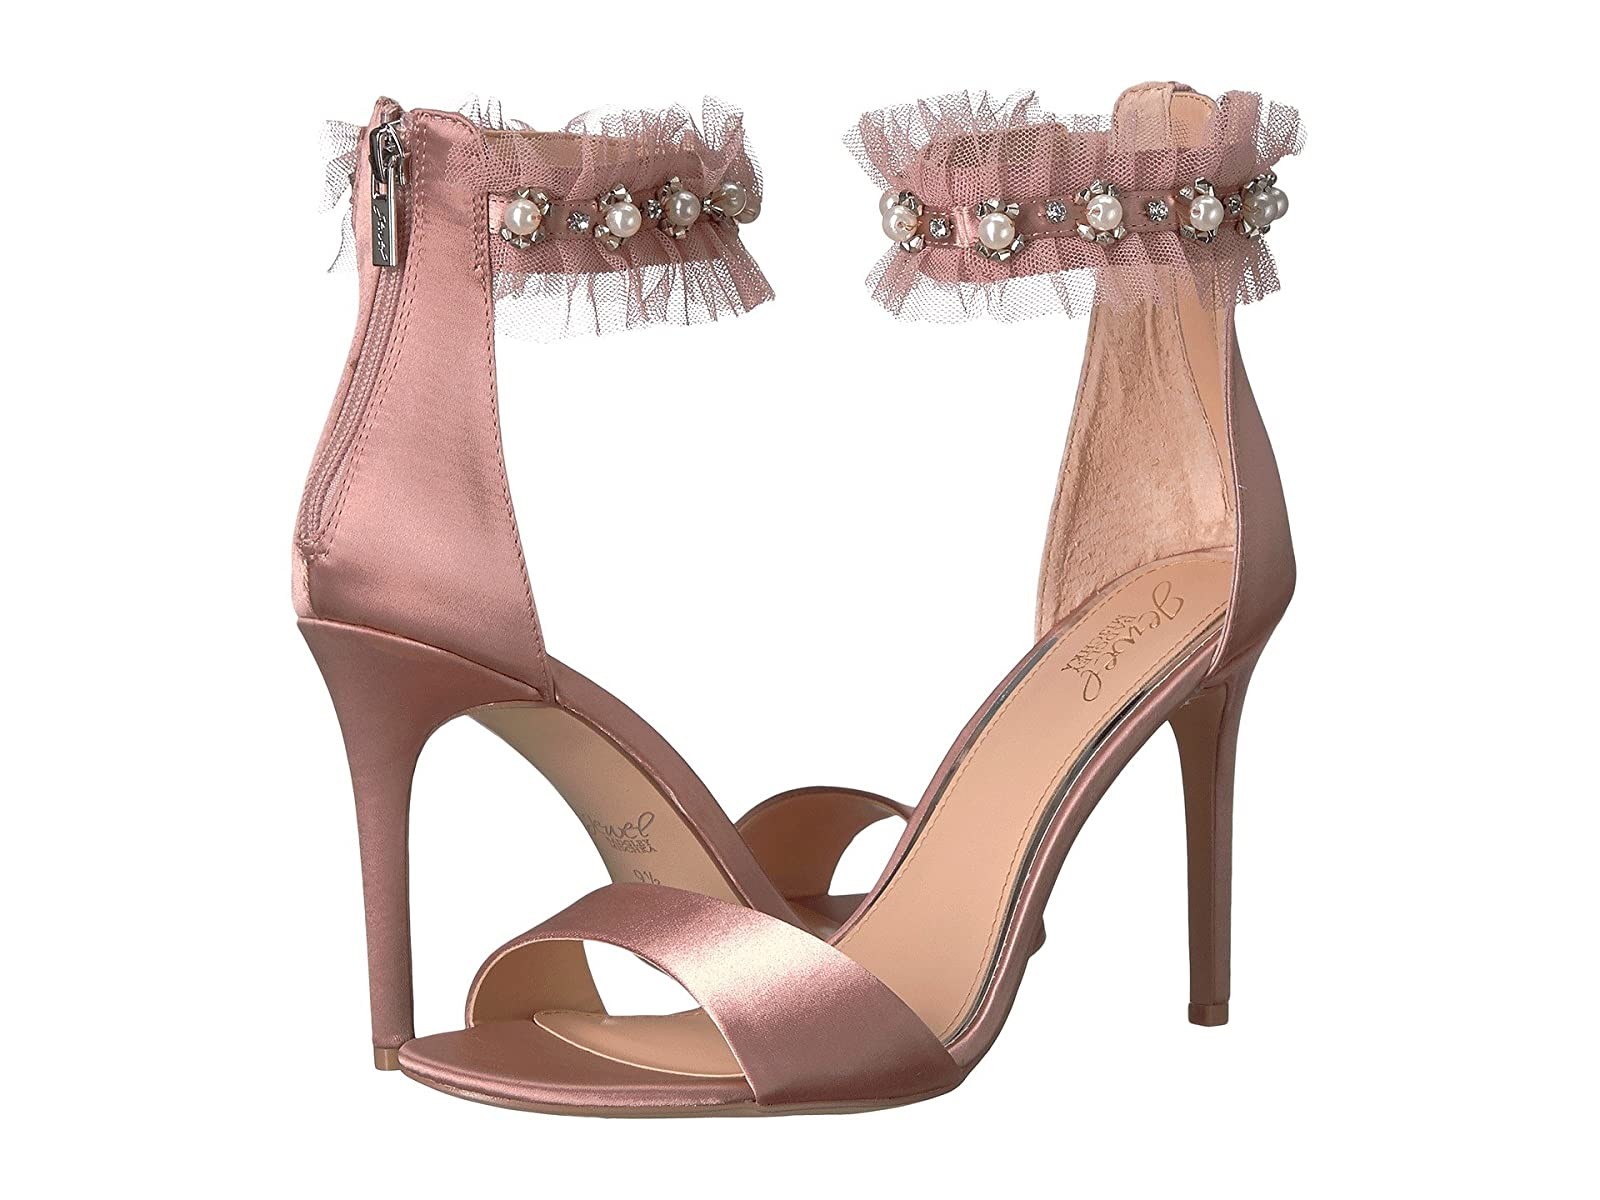 Jewel Badgley Mischka AbagailCheap and distinctive eye-catching shoes